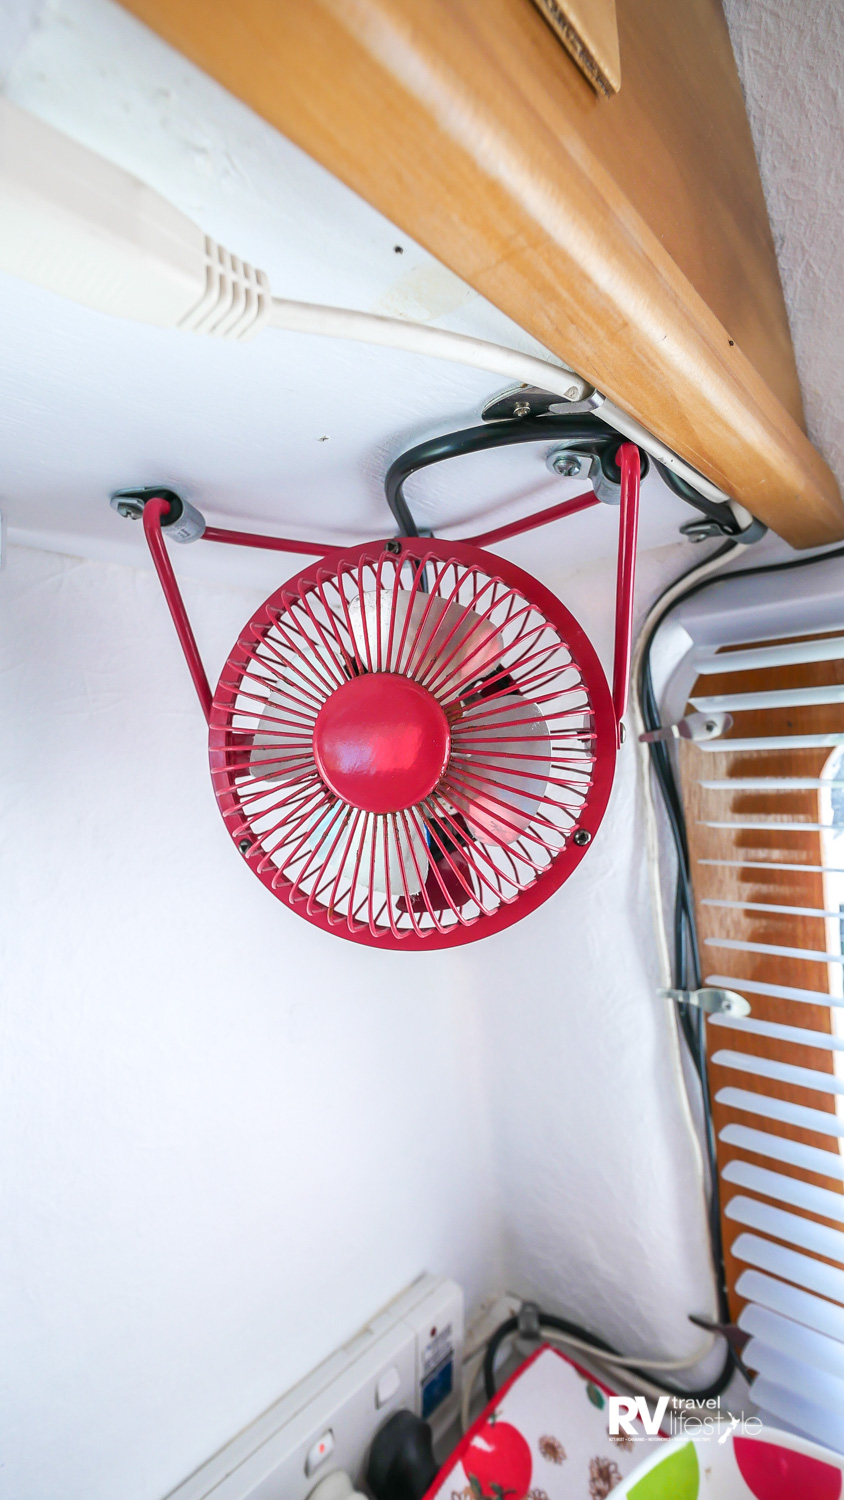 Retro styled and suitably red fan, 1950s air-con unit